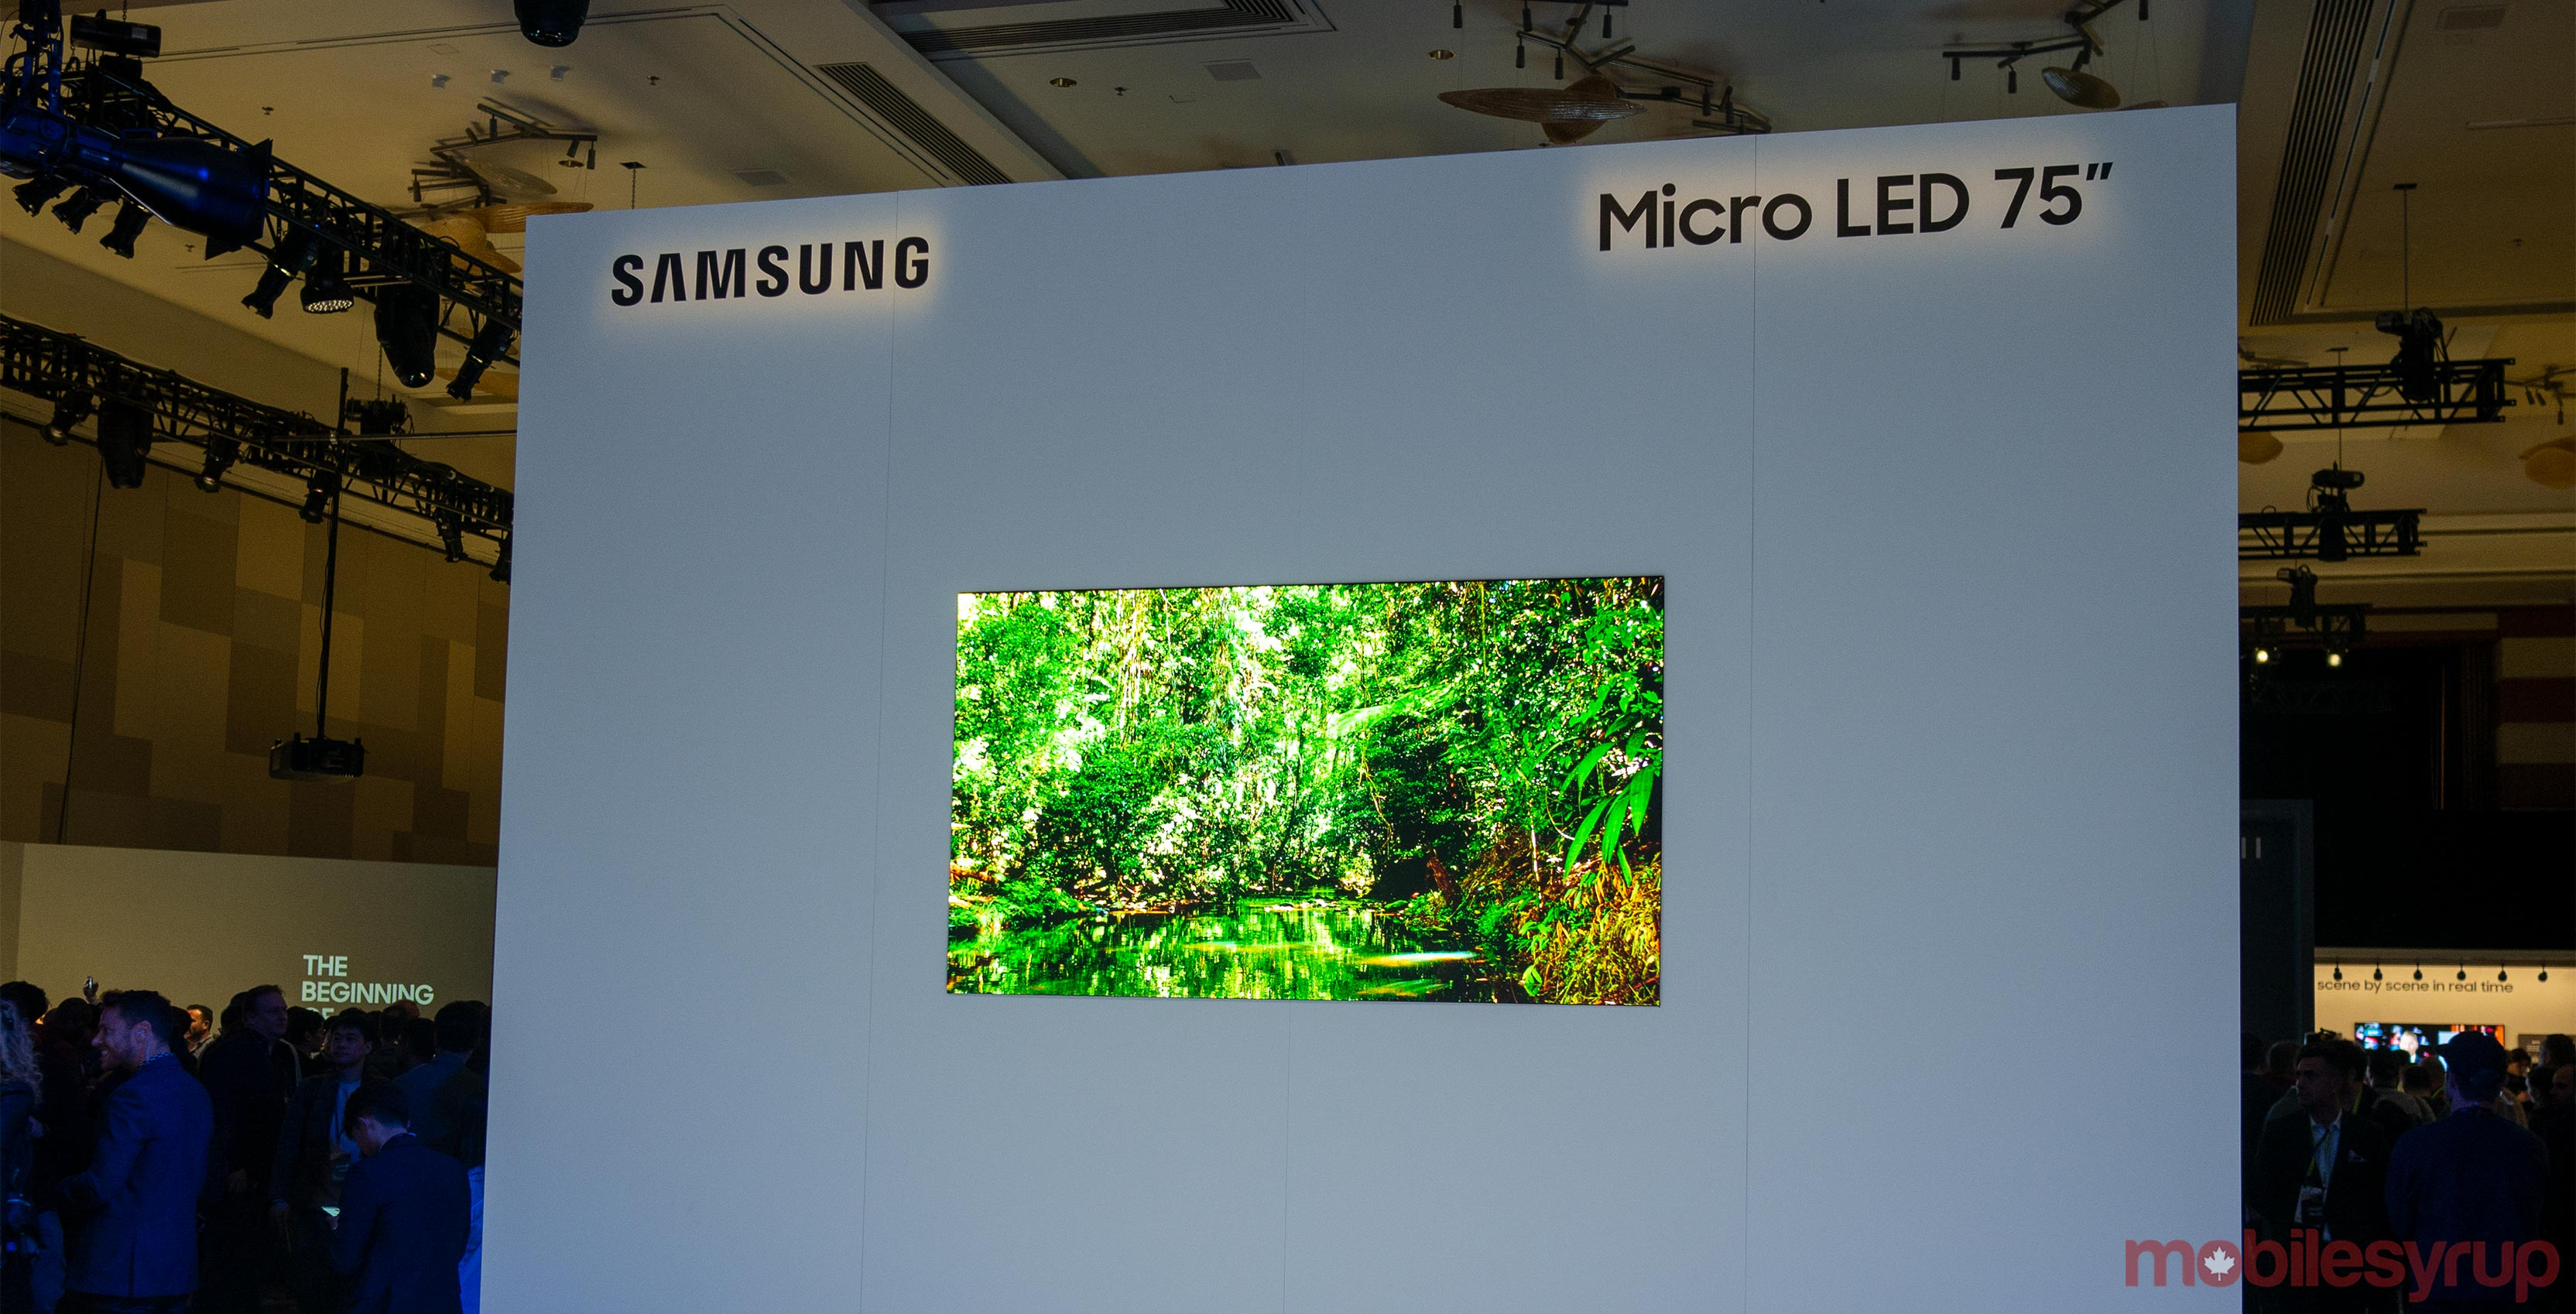 Samsung's 75-inch MicroLED 4K TV is the first exciting television